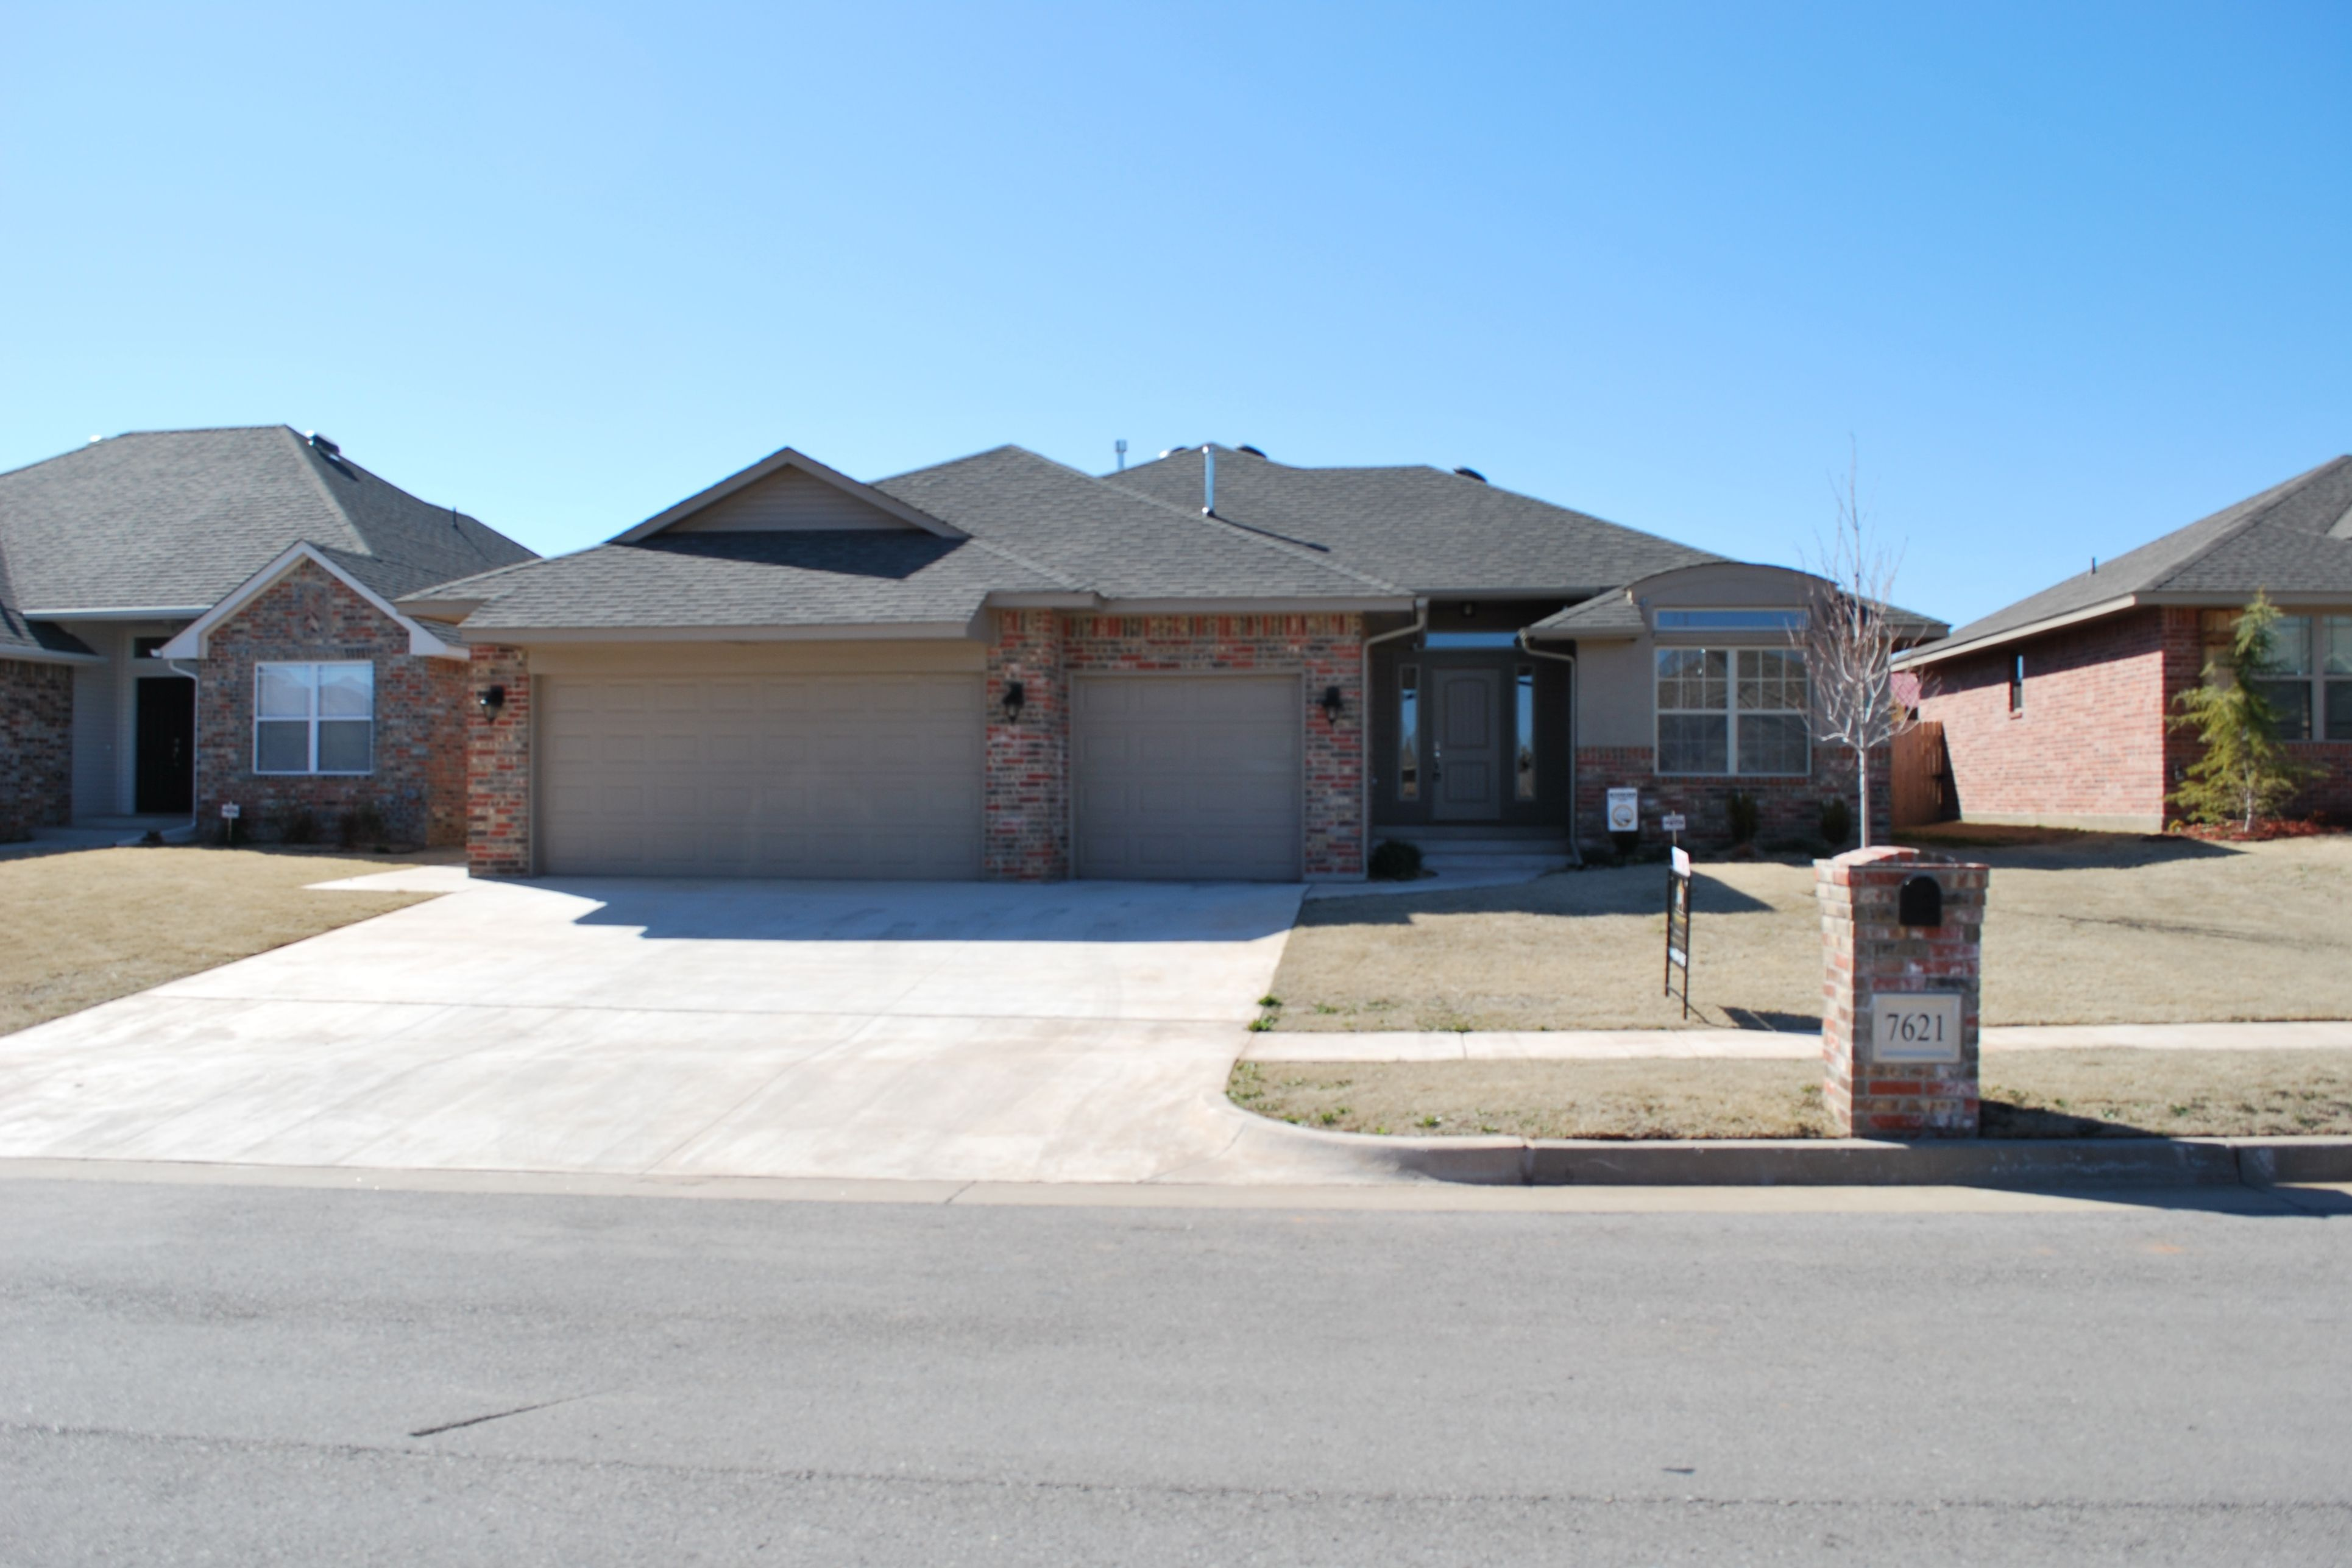 Sold In Yukon Oklahoma By Timbercraft Homes Llc Homes